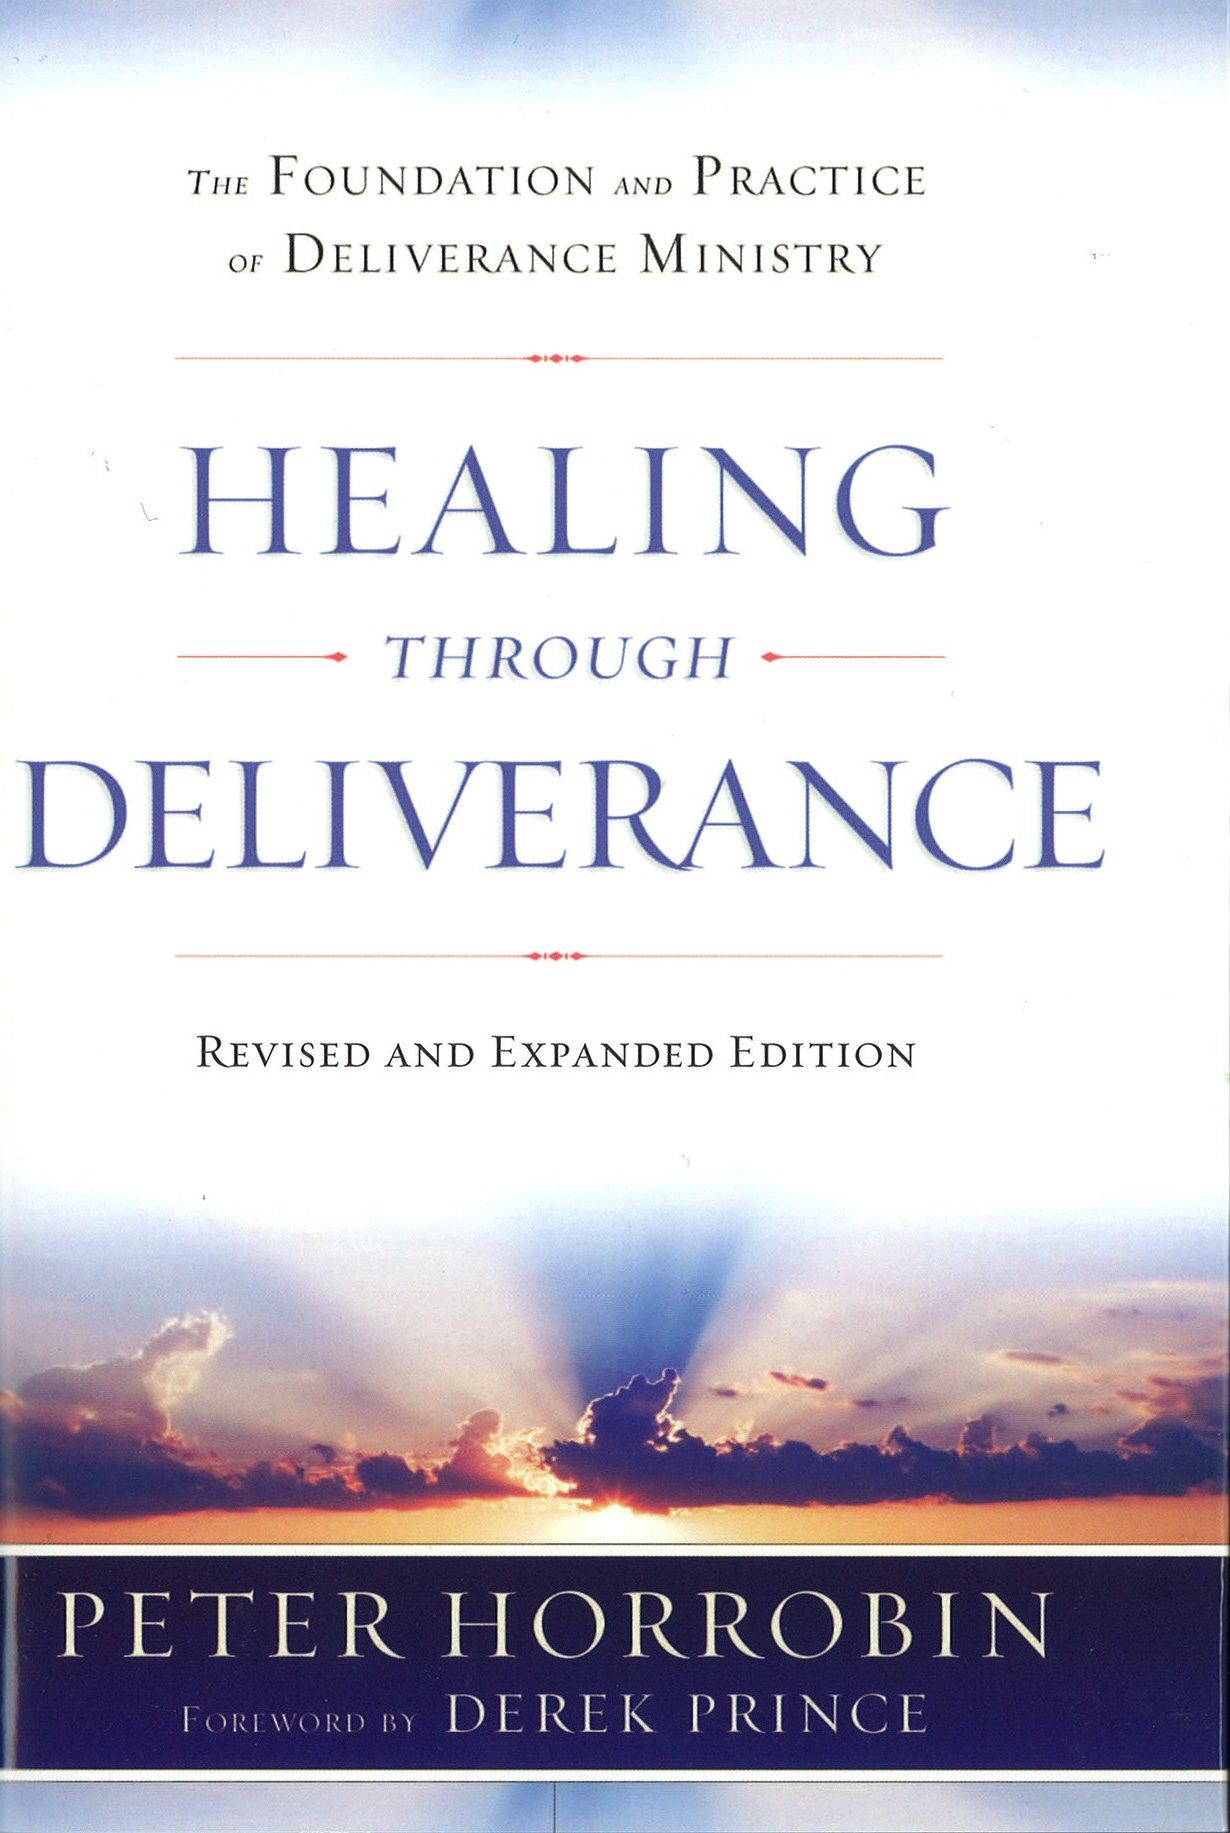 Healing Through Deliverance - The Foundation and Practice of